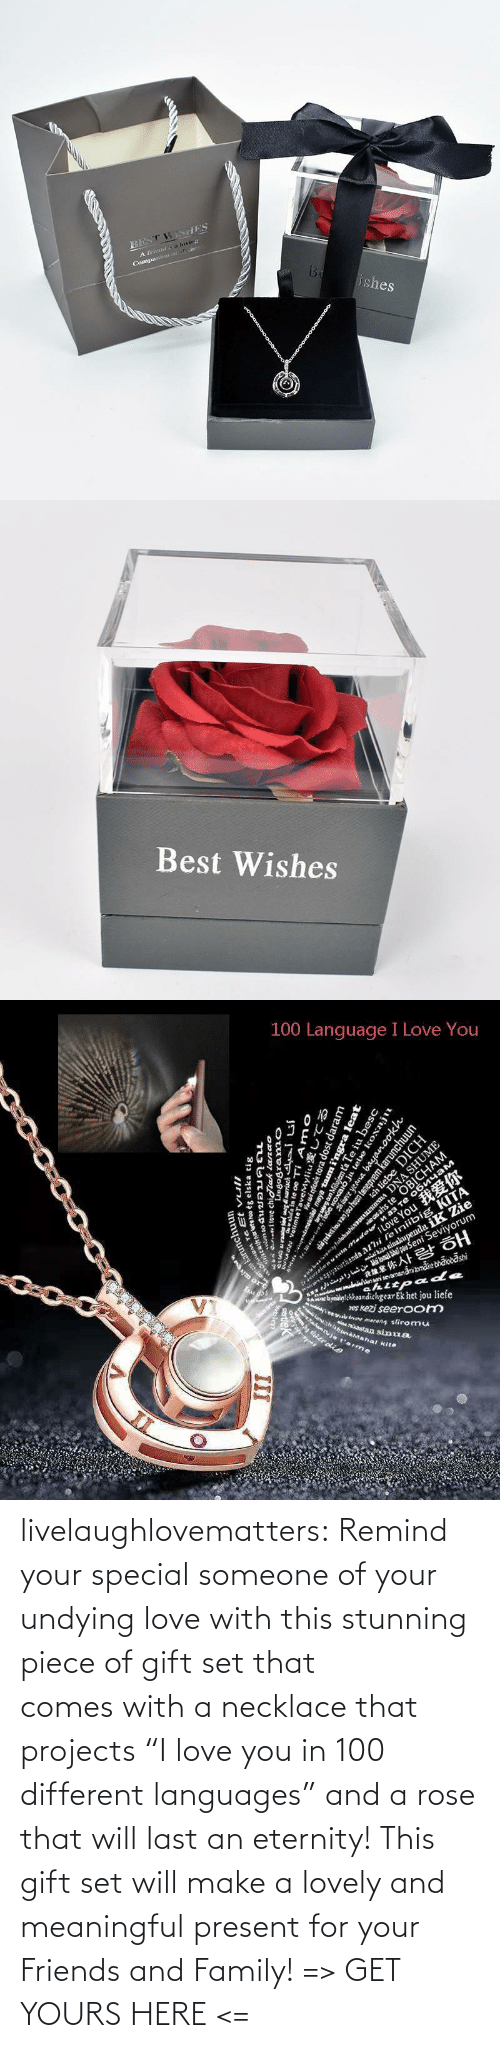 "Here: livelaughlovematters:  Remind your special someone of your undying love with this stunning piece of gift set that comes with a necklace that projects ""I love you in 100 different languages"" and a rose that will last an eternity! This gift set will make a lovely and meaningful present for your Friends and Family! => GET YOURS HERE <="